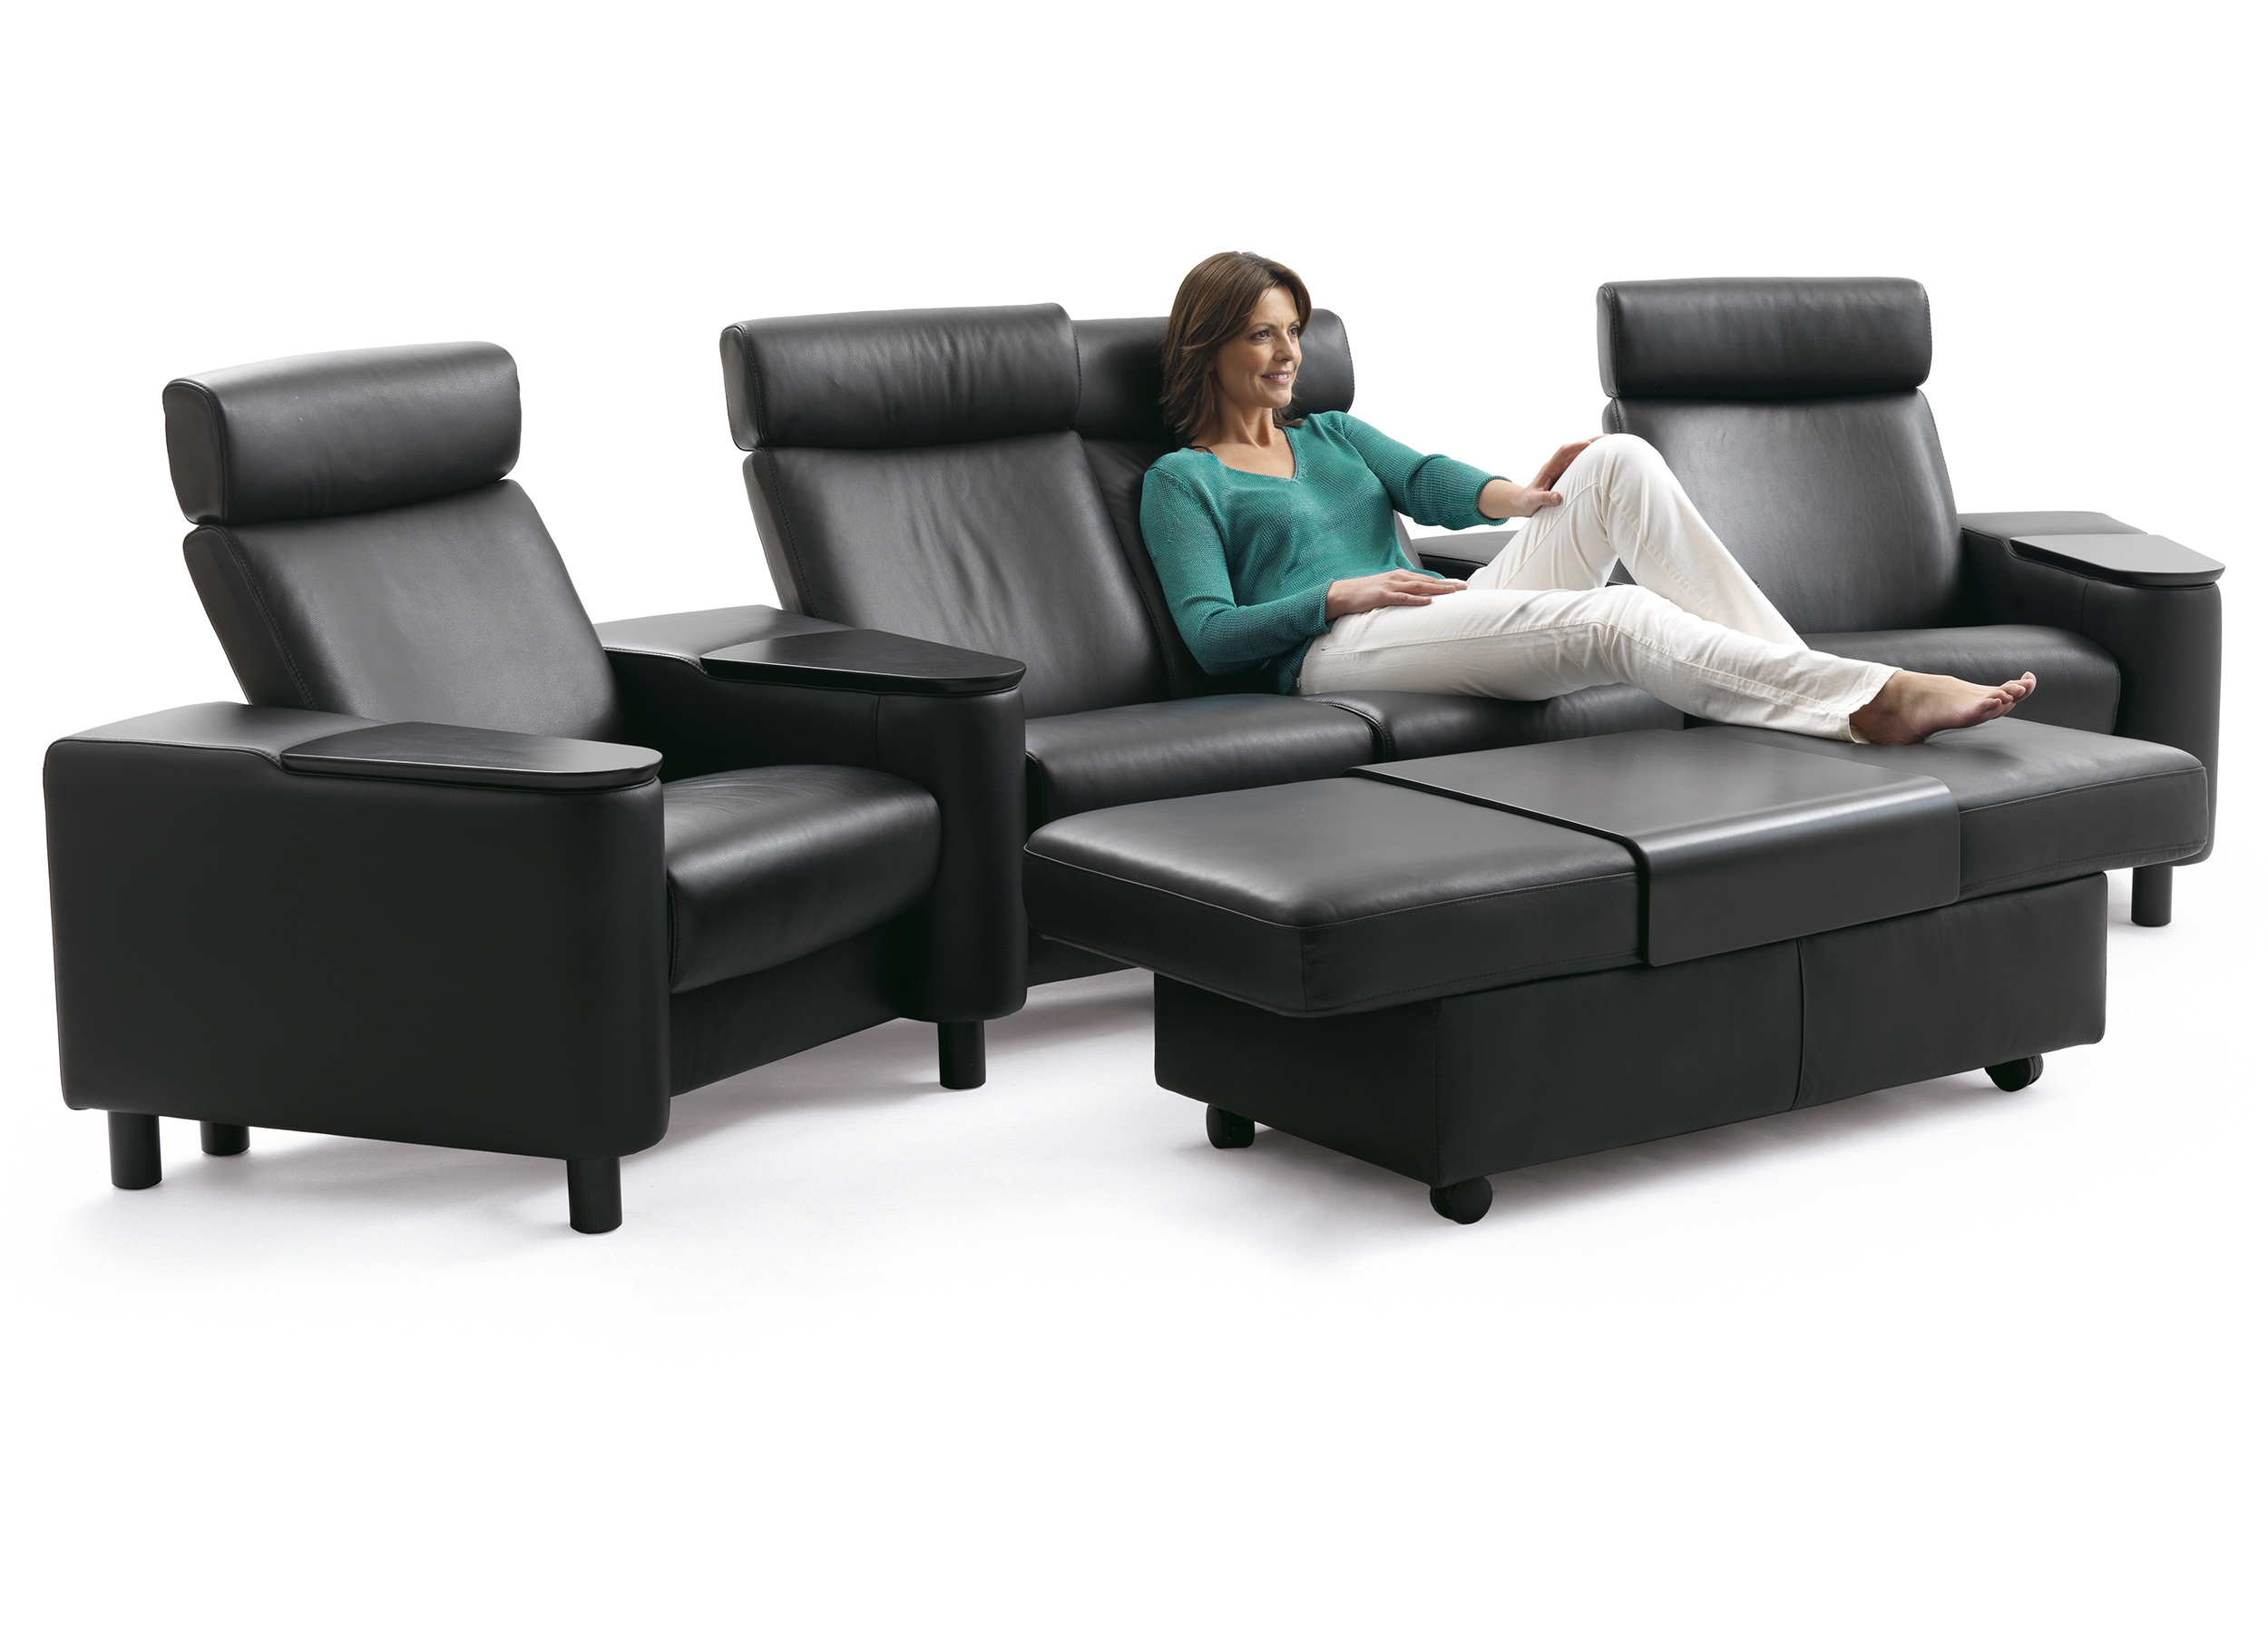 Ekornes Sofa Stressless Space Home Theater Sofa Sectional In Paloma Black Leather By Ekornes